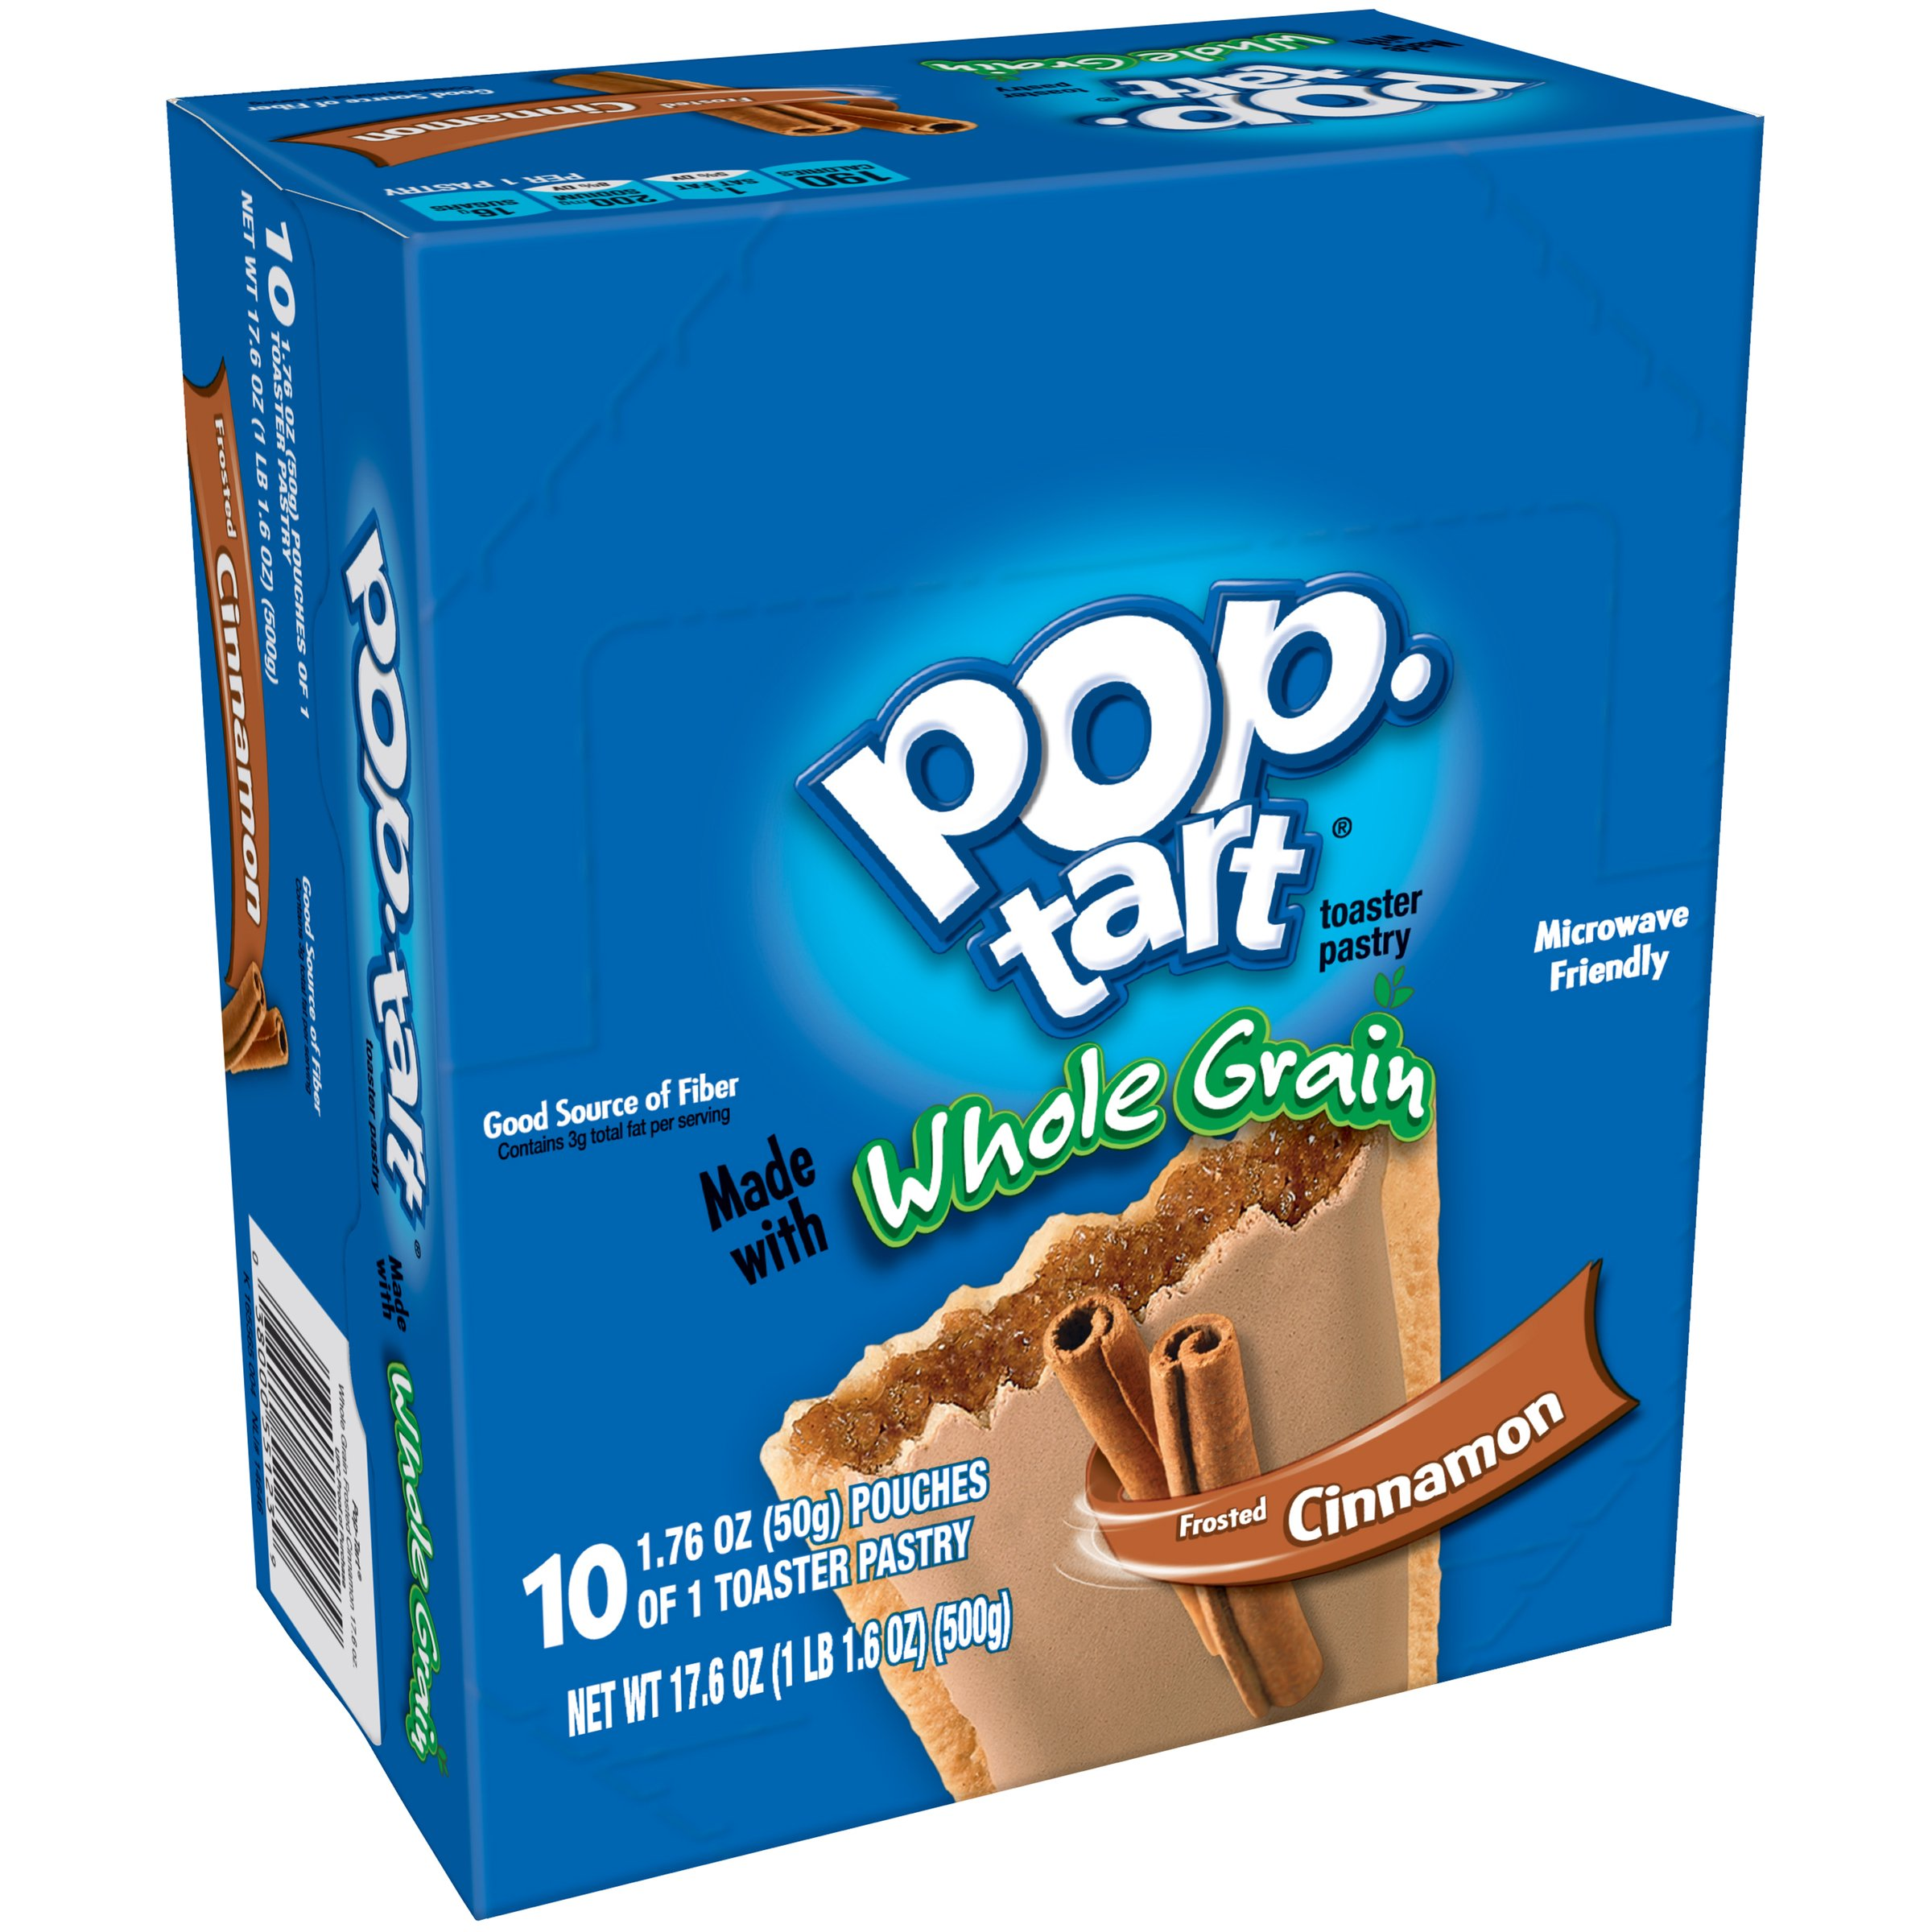 Pop-Tarts BreakfastToaster Pastries, Whole Grain Frosted Brown Sugar Cinnamon Flavored, Bulk Size, 120 Count (Pack of 12, 17.6 oz Boxes) by Pop-Tarts